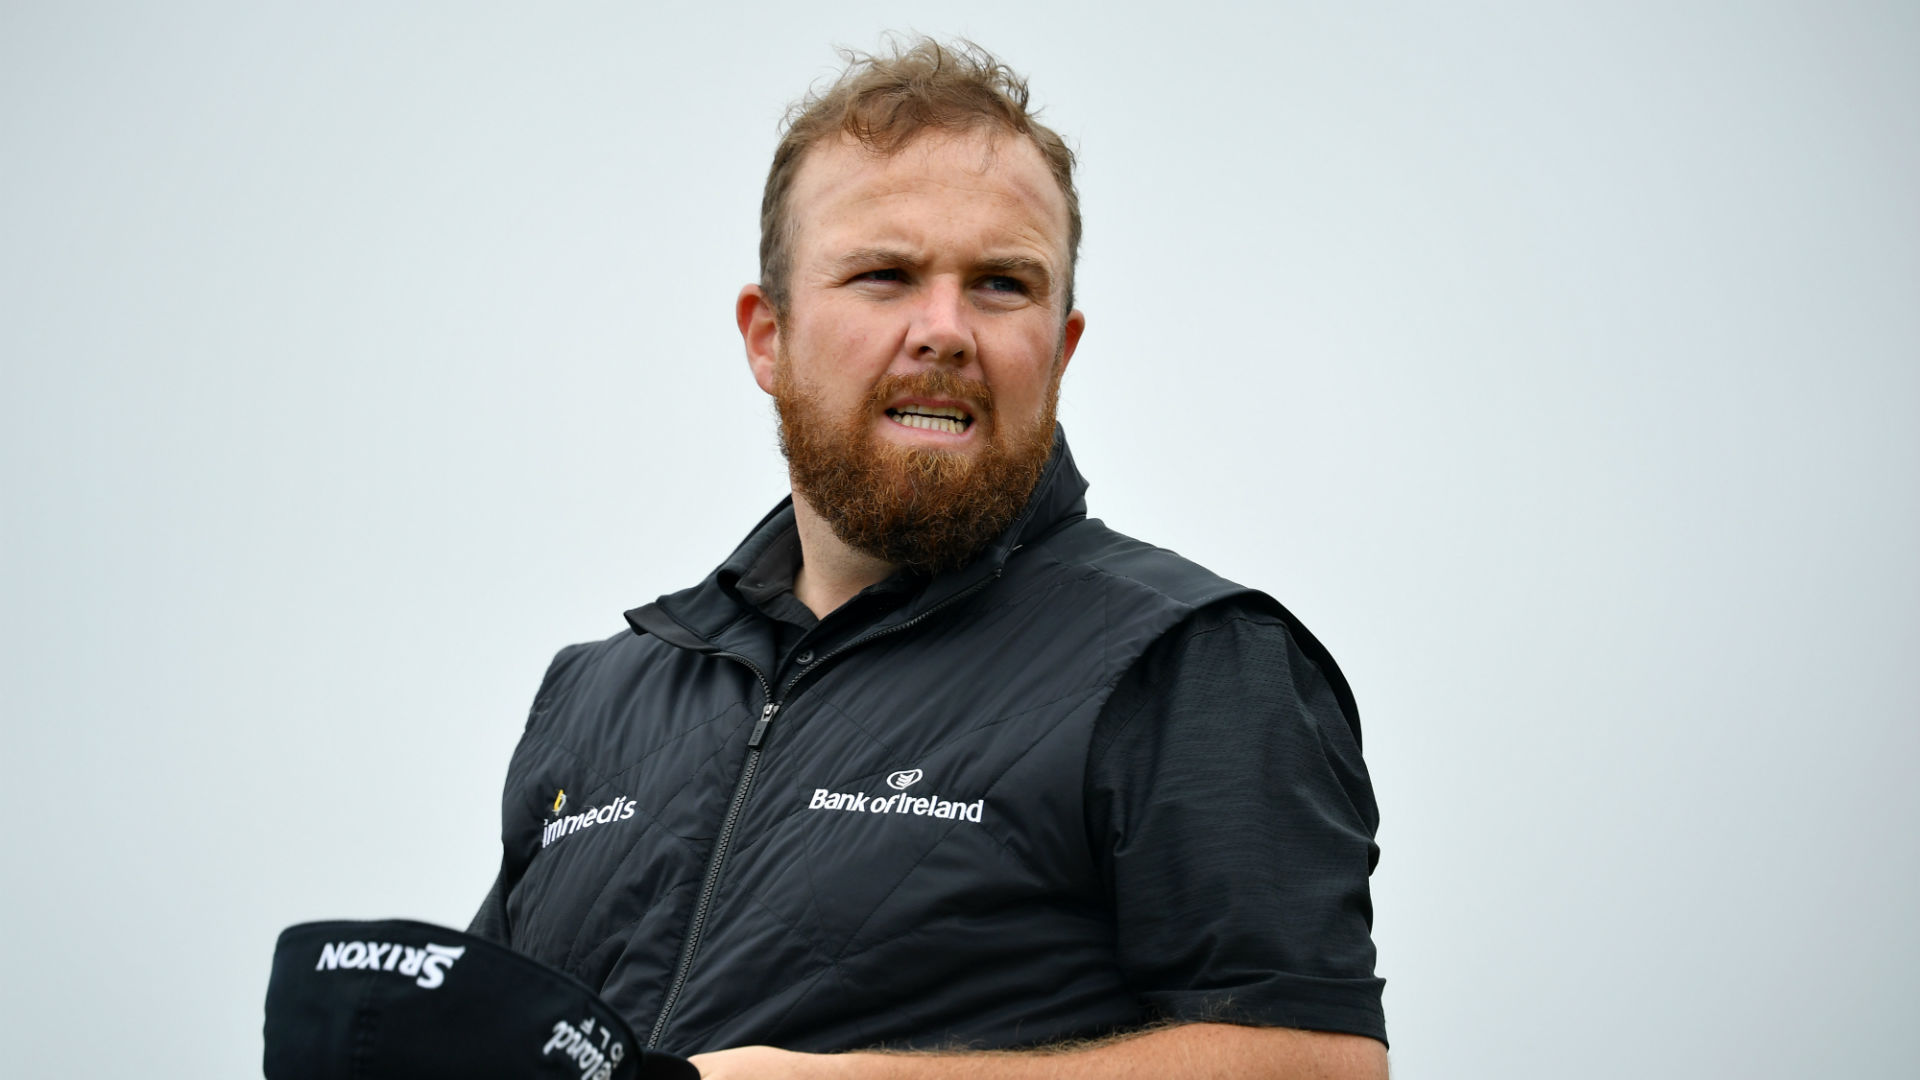 The Open 2019: How the final round unfolded as Shane Lowry stormed to Portrush triumph